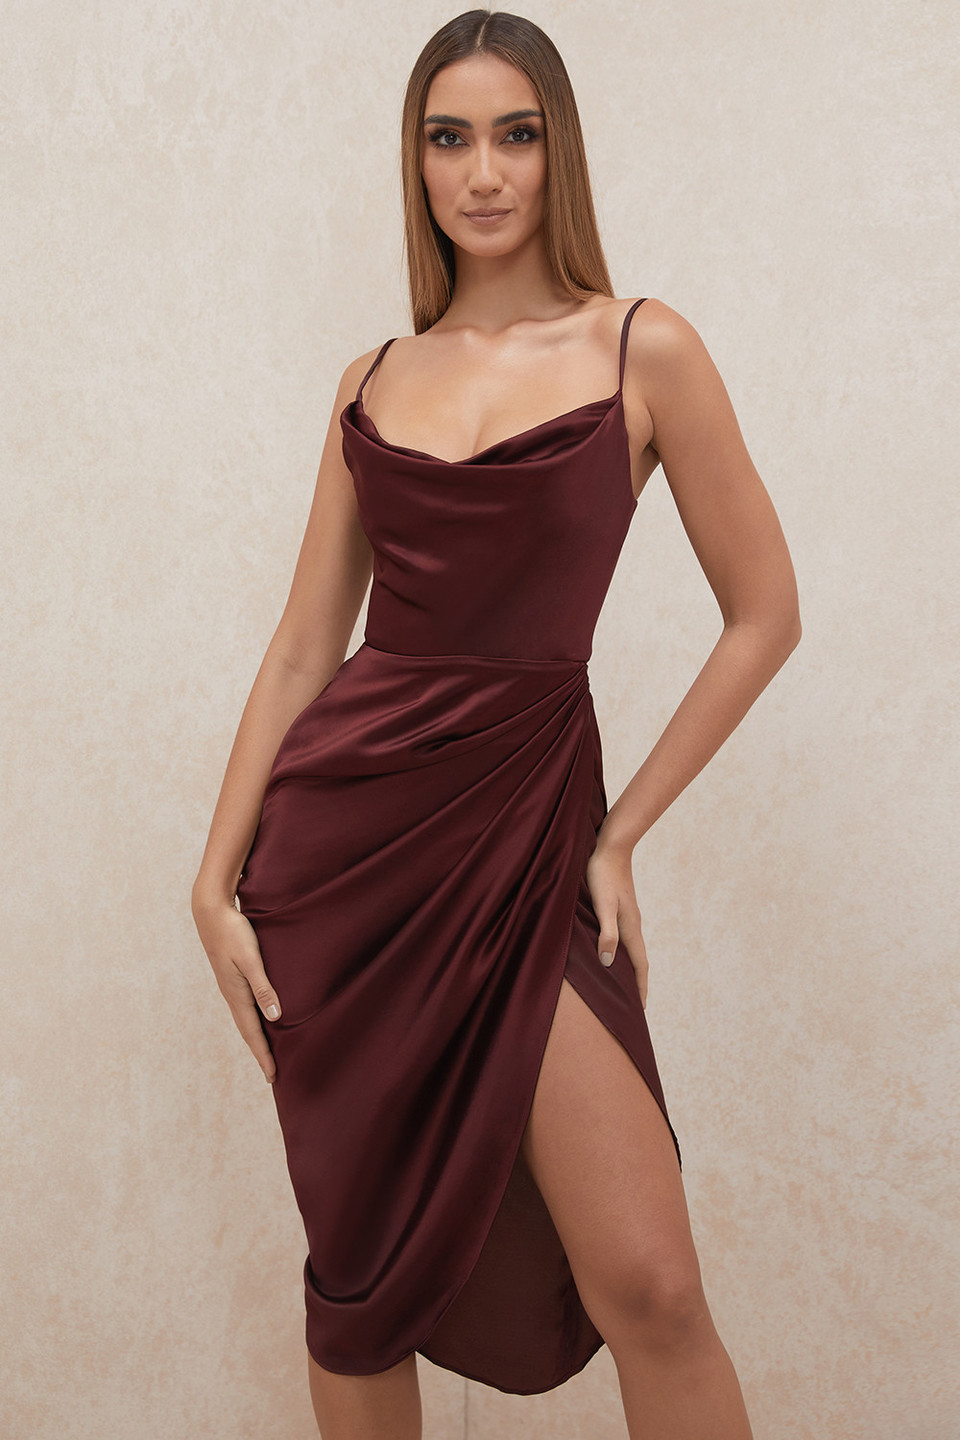 Reva Raisin Satin Balcony Corset Dress